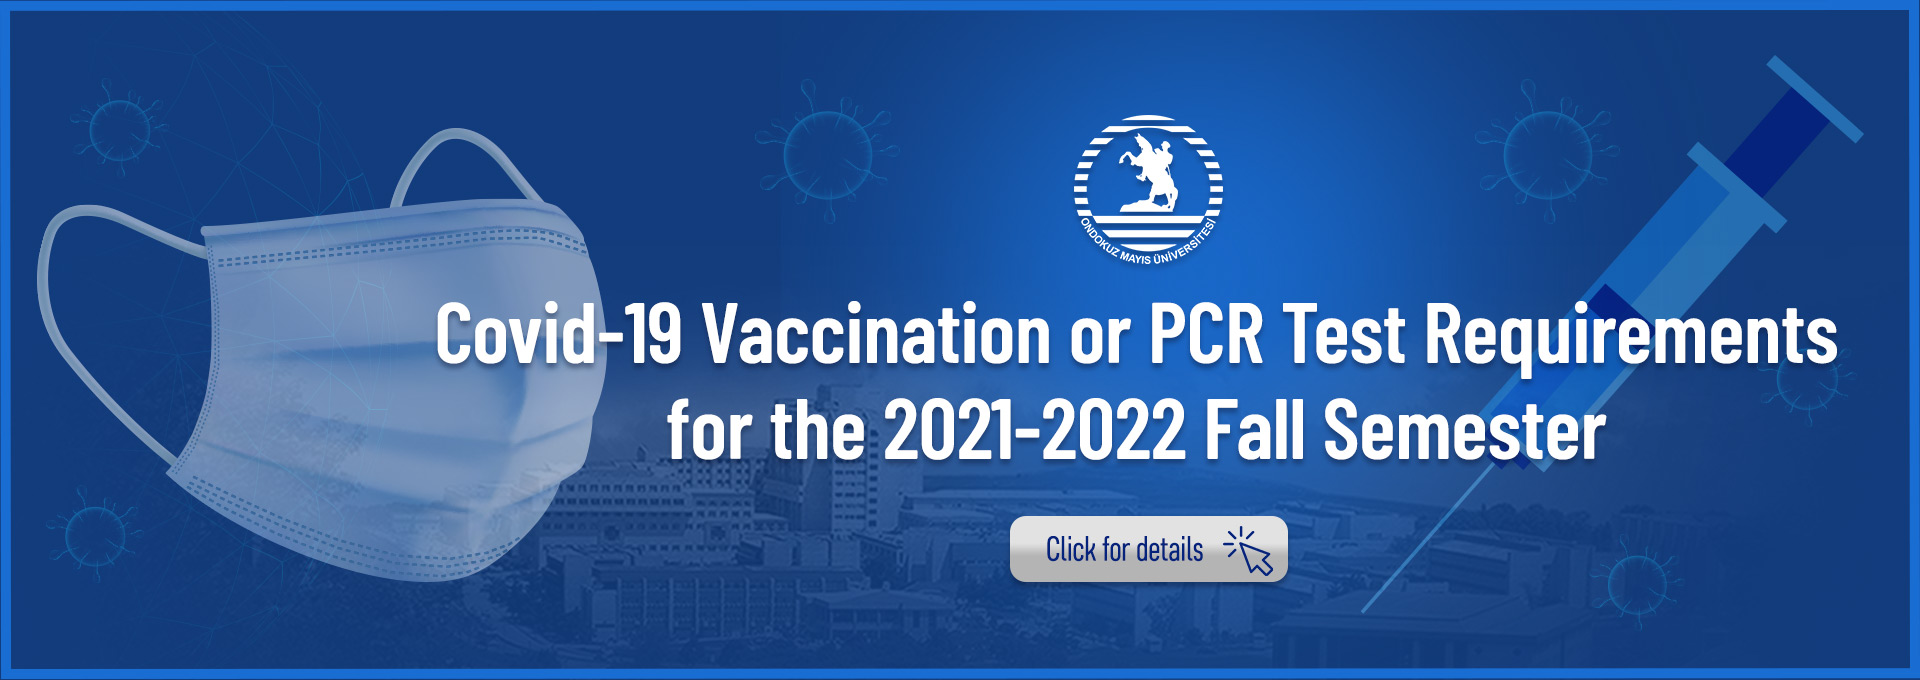 Covid-19 Vaccination or PCR Test Requirements for the 2021-2022 Fall Semester